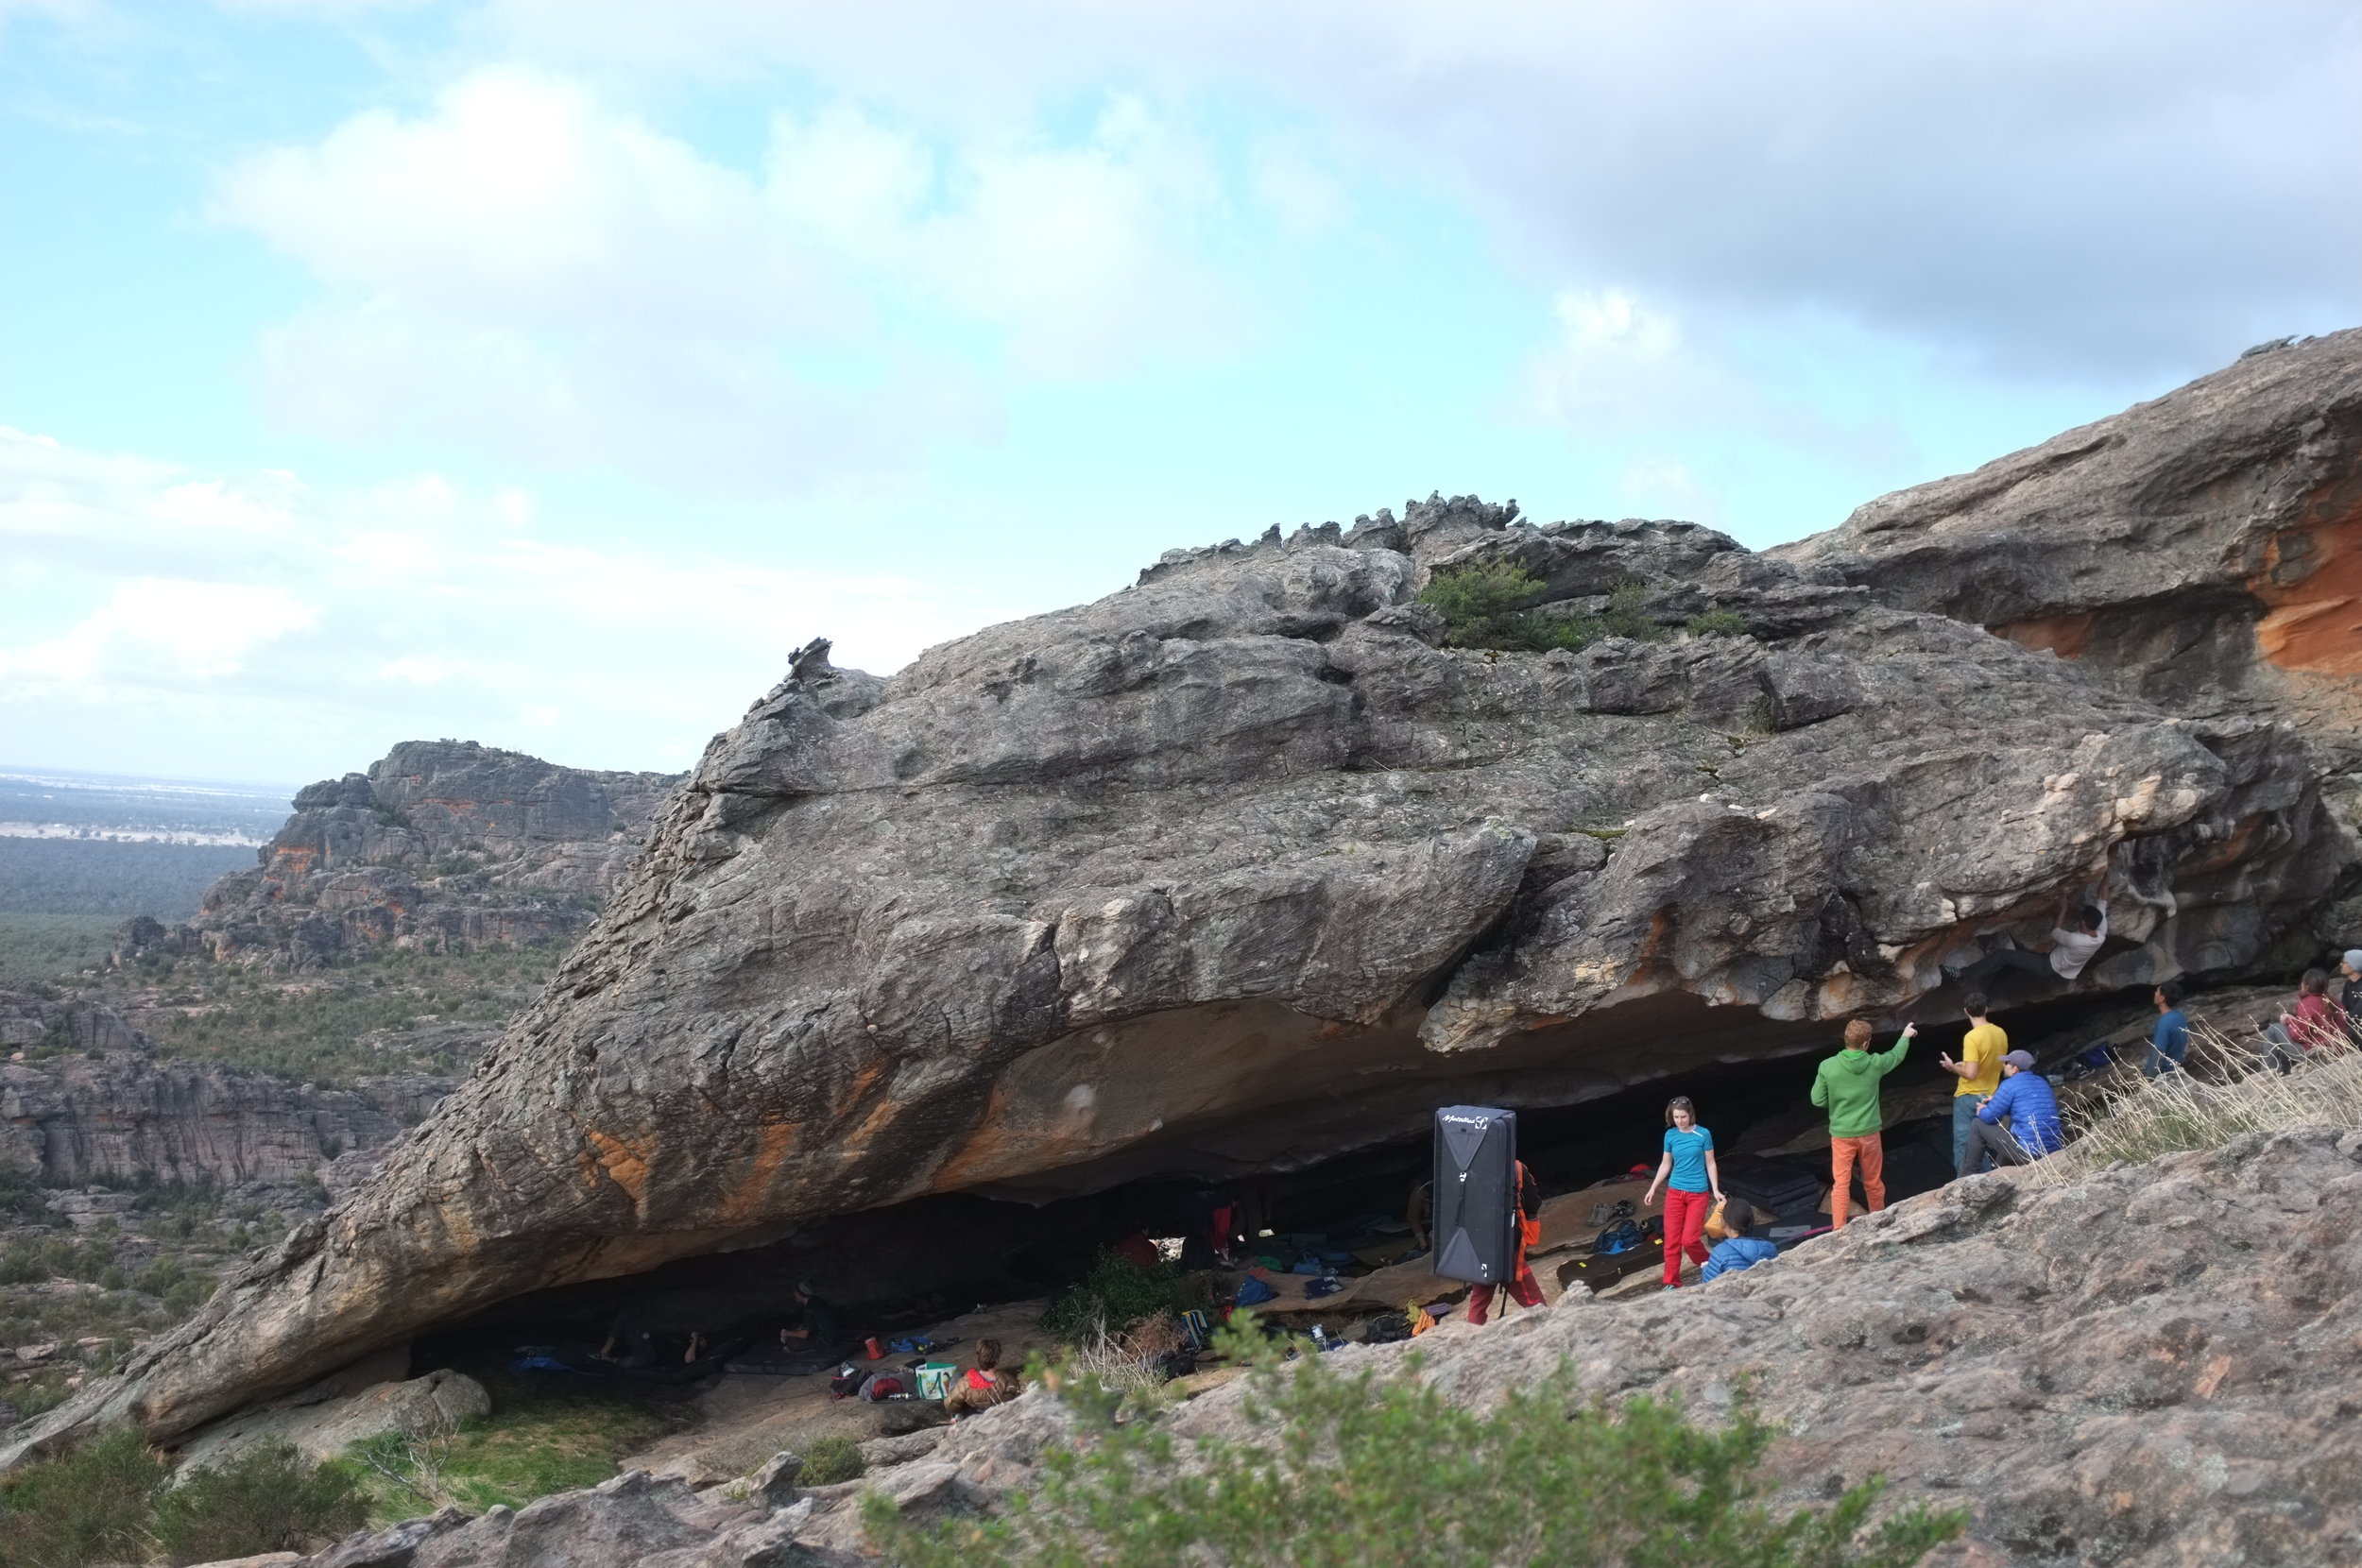 The Hollow Mountain Cave is a huge, slightly slanting crack, opening at an exposed peak overlooking the flat farmlands below.